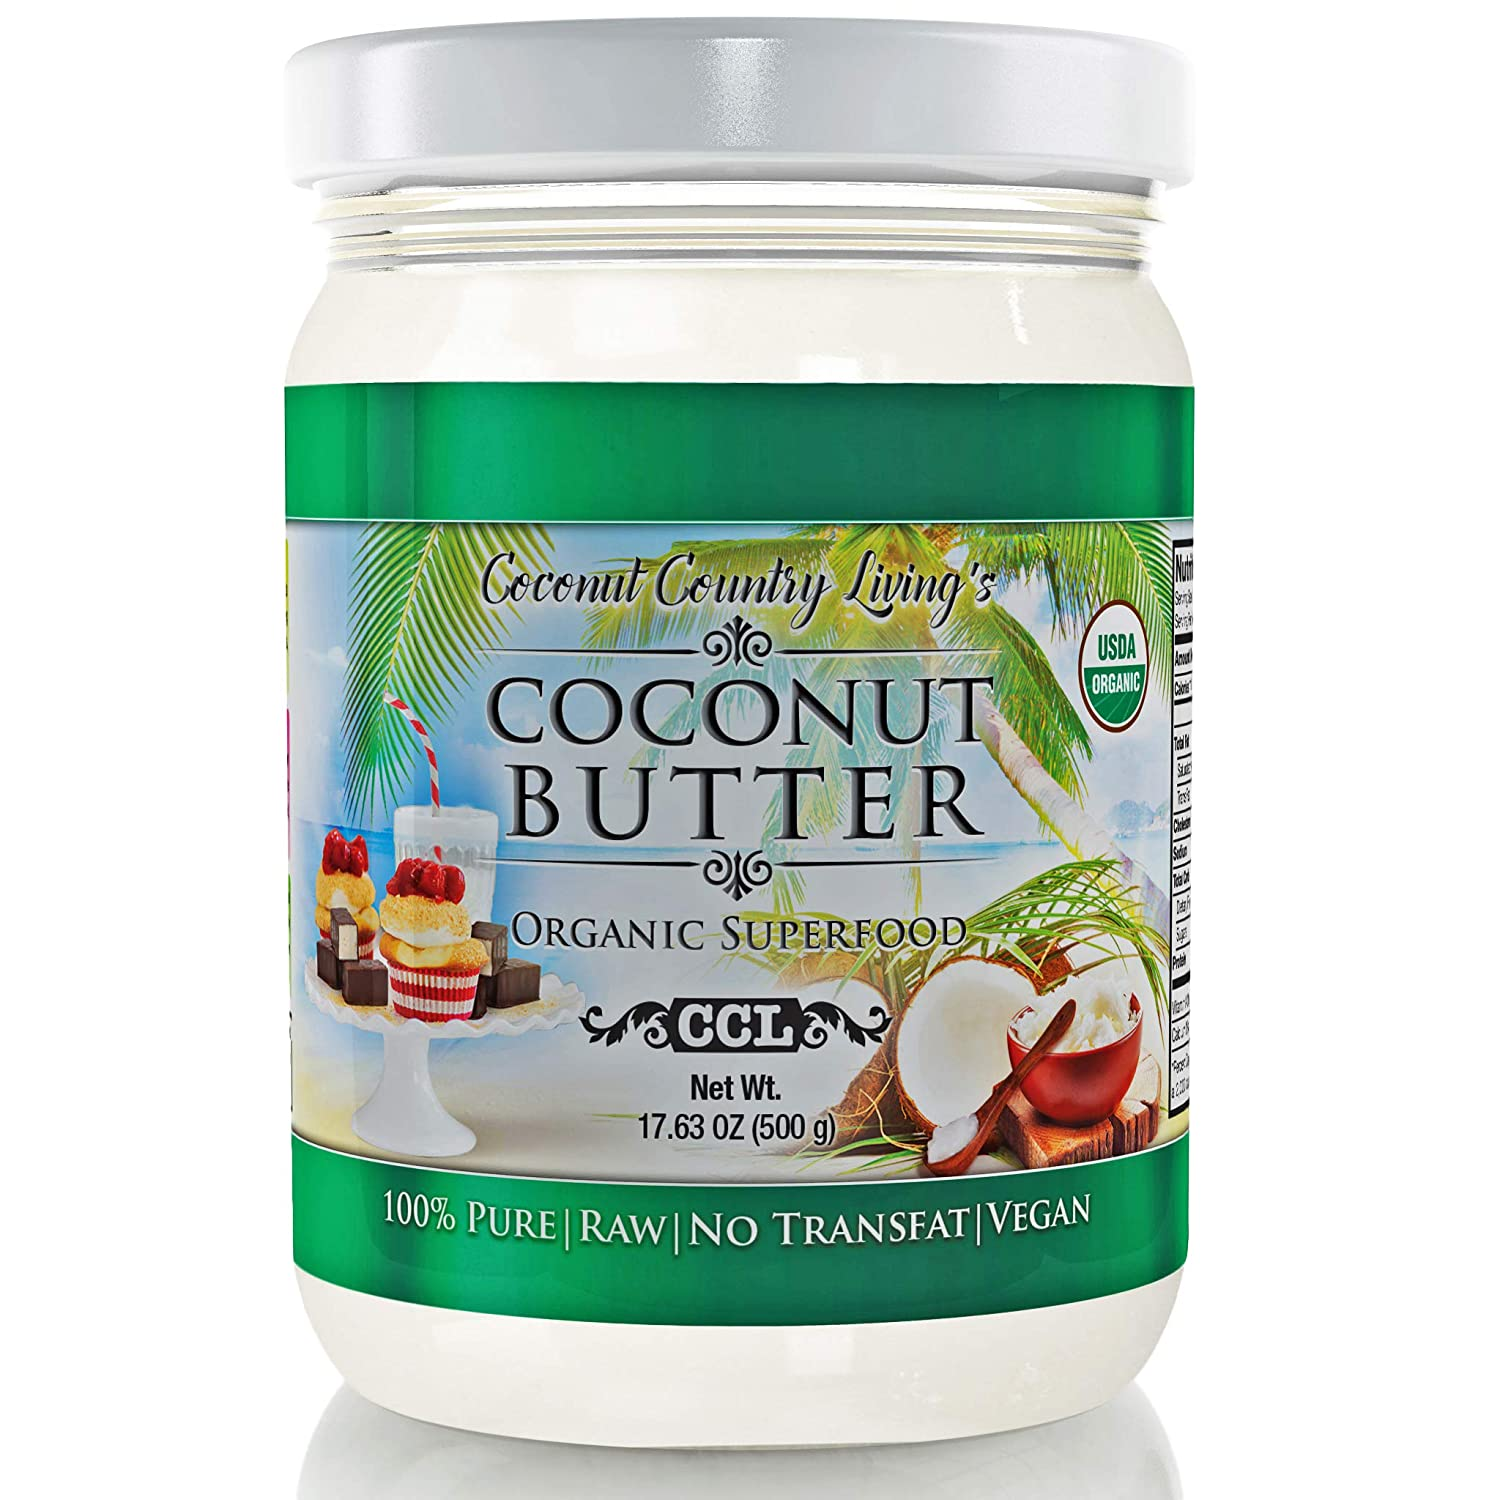 Organic Coconut Butter 2 Pack 17.6 oz each Stone Ground Pureed w/ E-Book of Organic Gourmet Keto Paleo Friendly Recipes